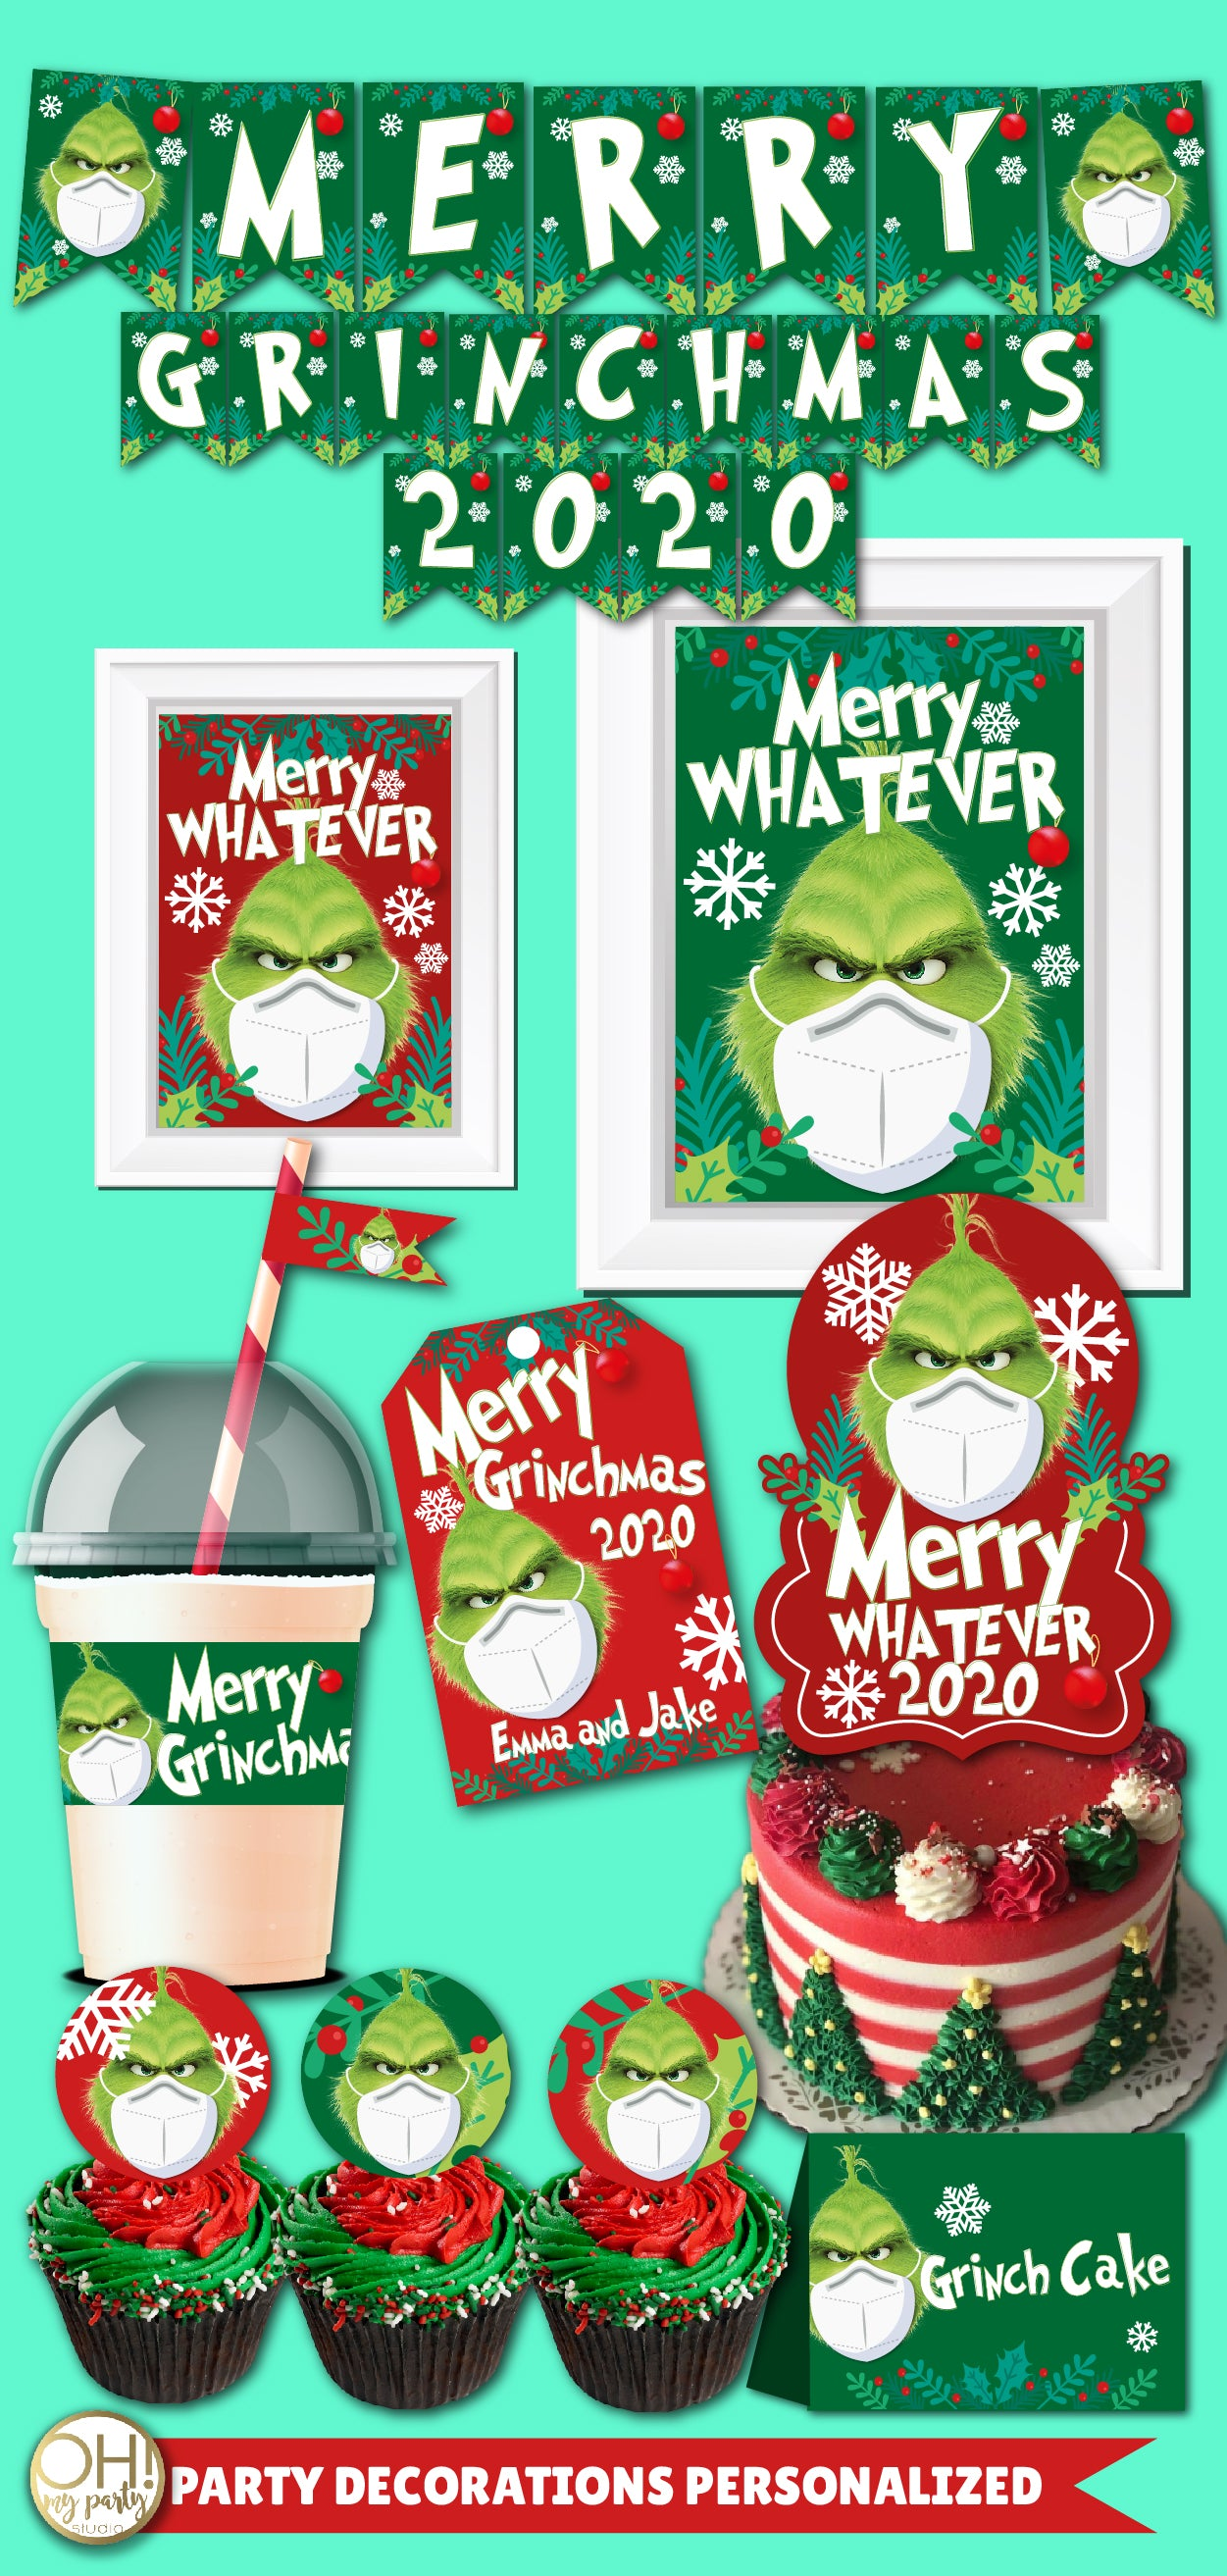 Grinch party supplies, grinch party ideas, grinchmas decorations, grinchmas 2020, merry grinchmas party, grinchmas party theme, grinchmas party supplies, grinchmas party, grinch christmas decorations, grinch birthday party, grinch party supplies, grinch christmas party, grinch christmas party decorations, grinch christmas party ideas, merry grinchmas decor, christmas 2020 trends, christmas 2020 coronavirus, grinch coronavirus